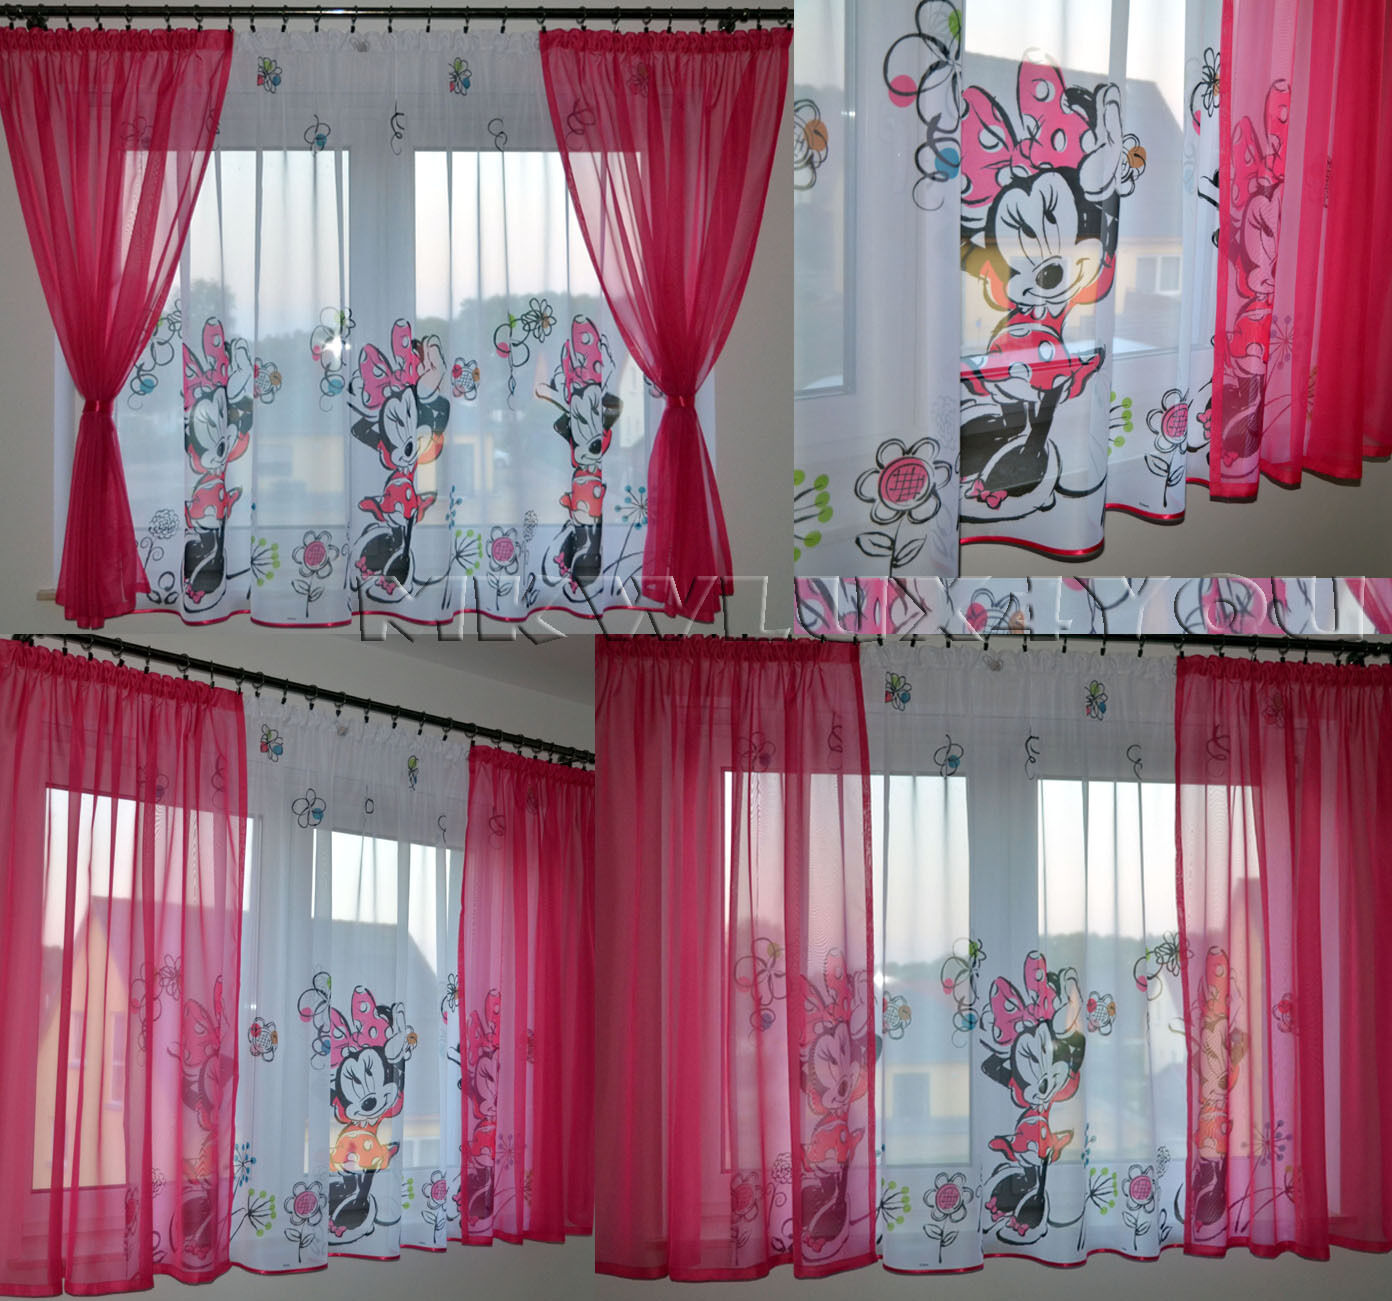 disney gardine minnie mouse rosa pink vorhang kindergardine kinderzimmer neu eur 59 99. Black Bedroom Furniture Sets. Home Design Ideas